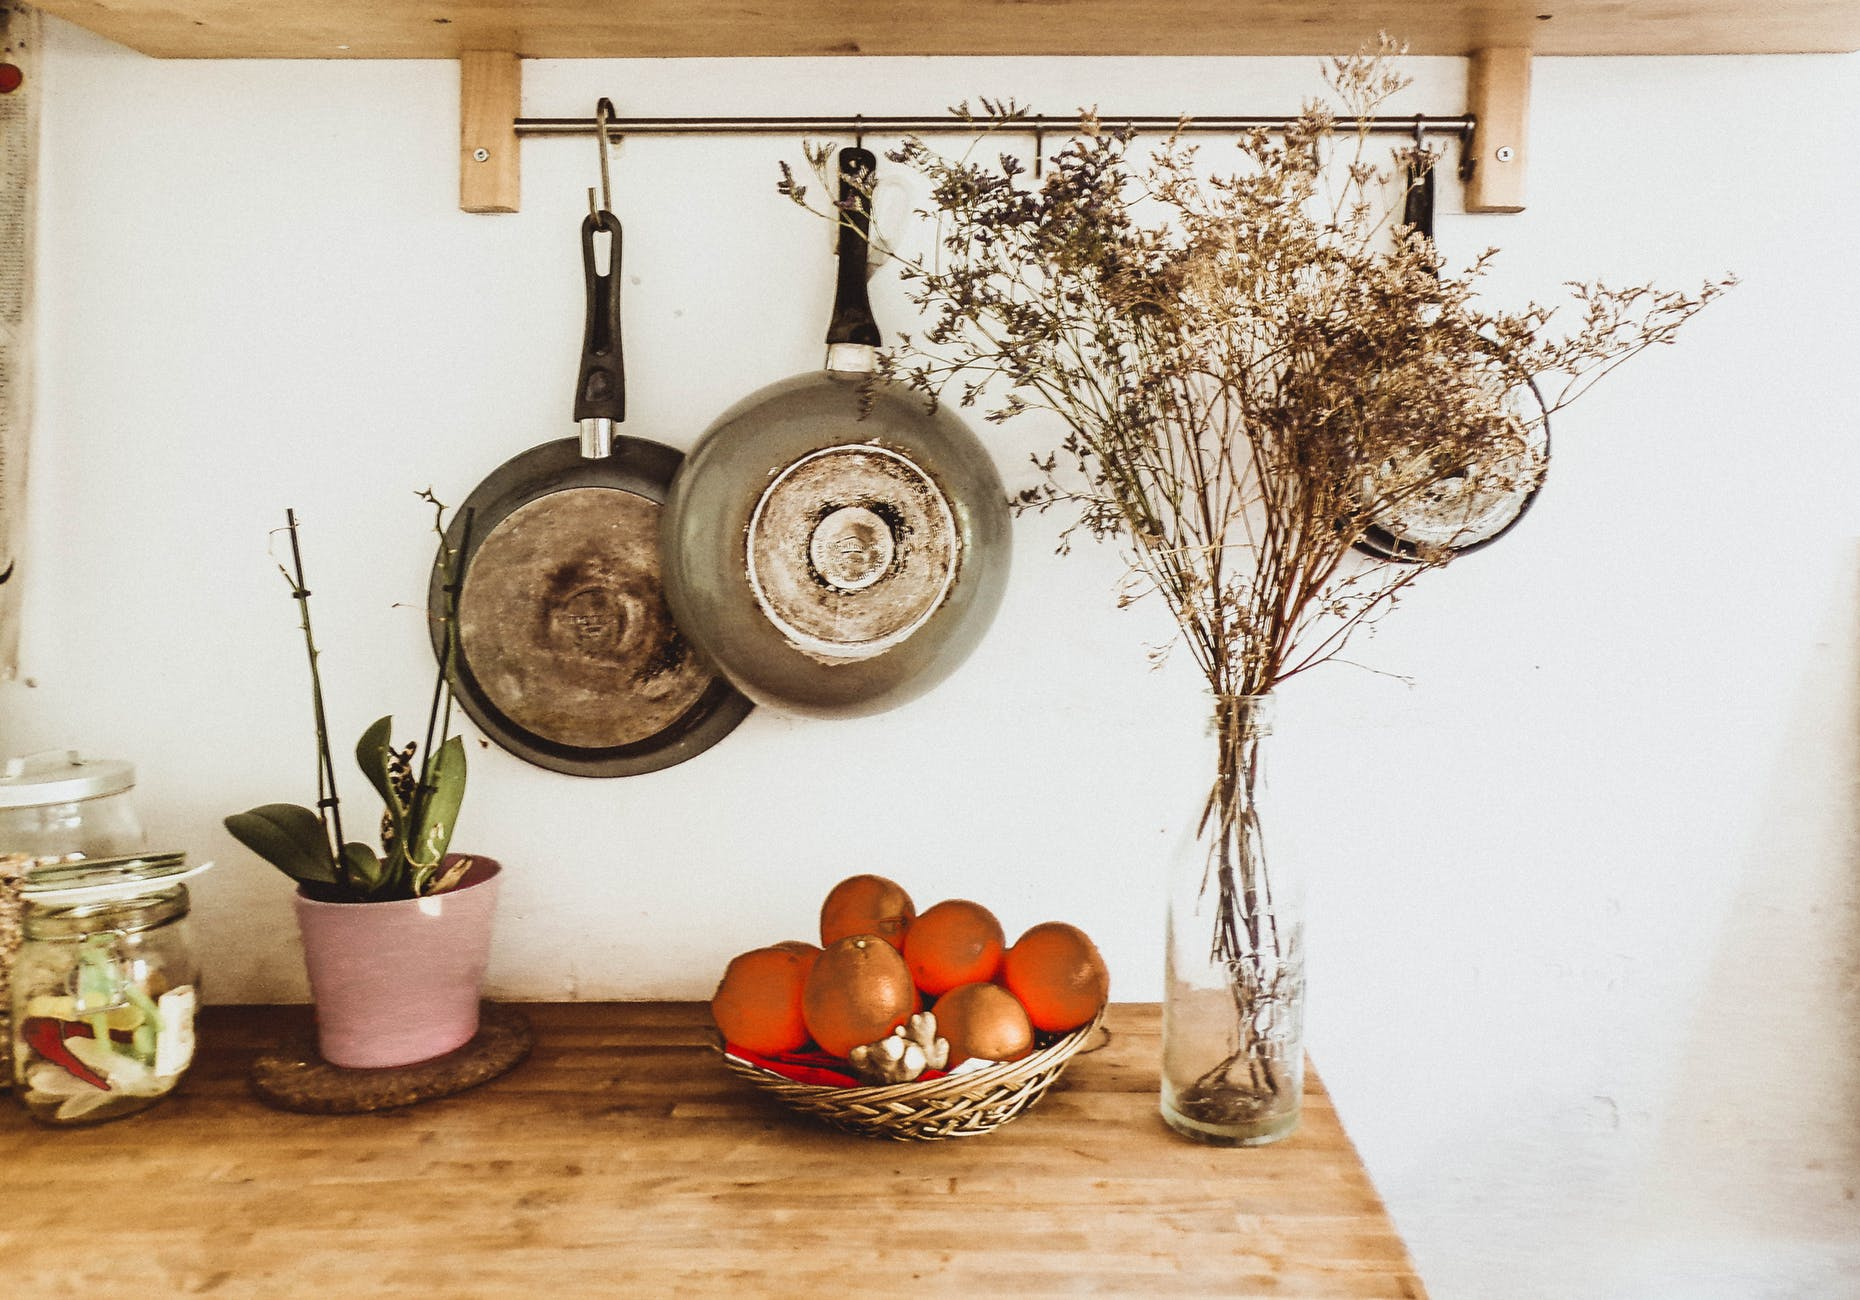 An in-depth review of the best cookware sets available in 2019.